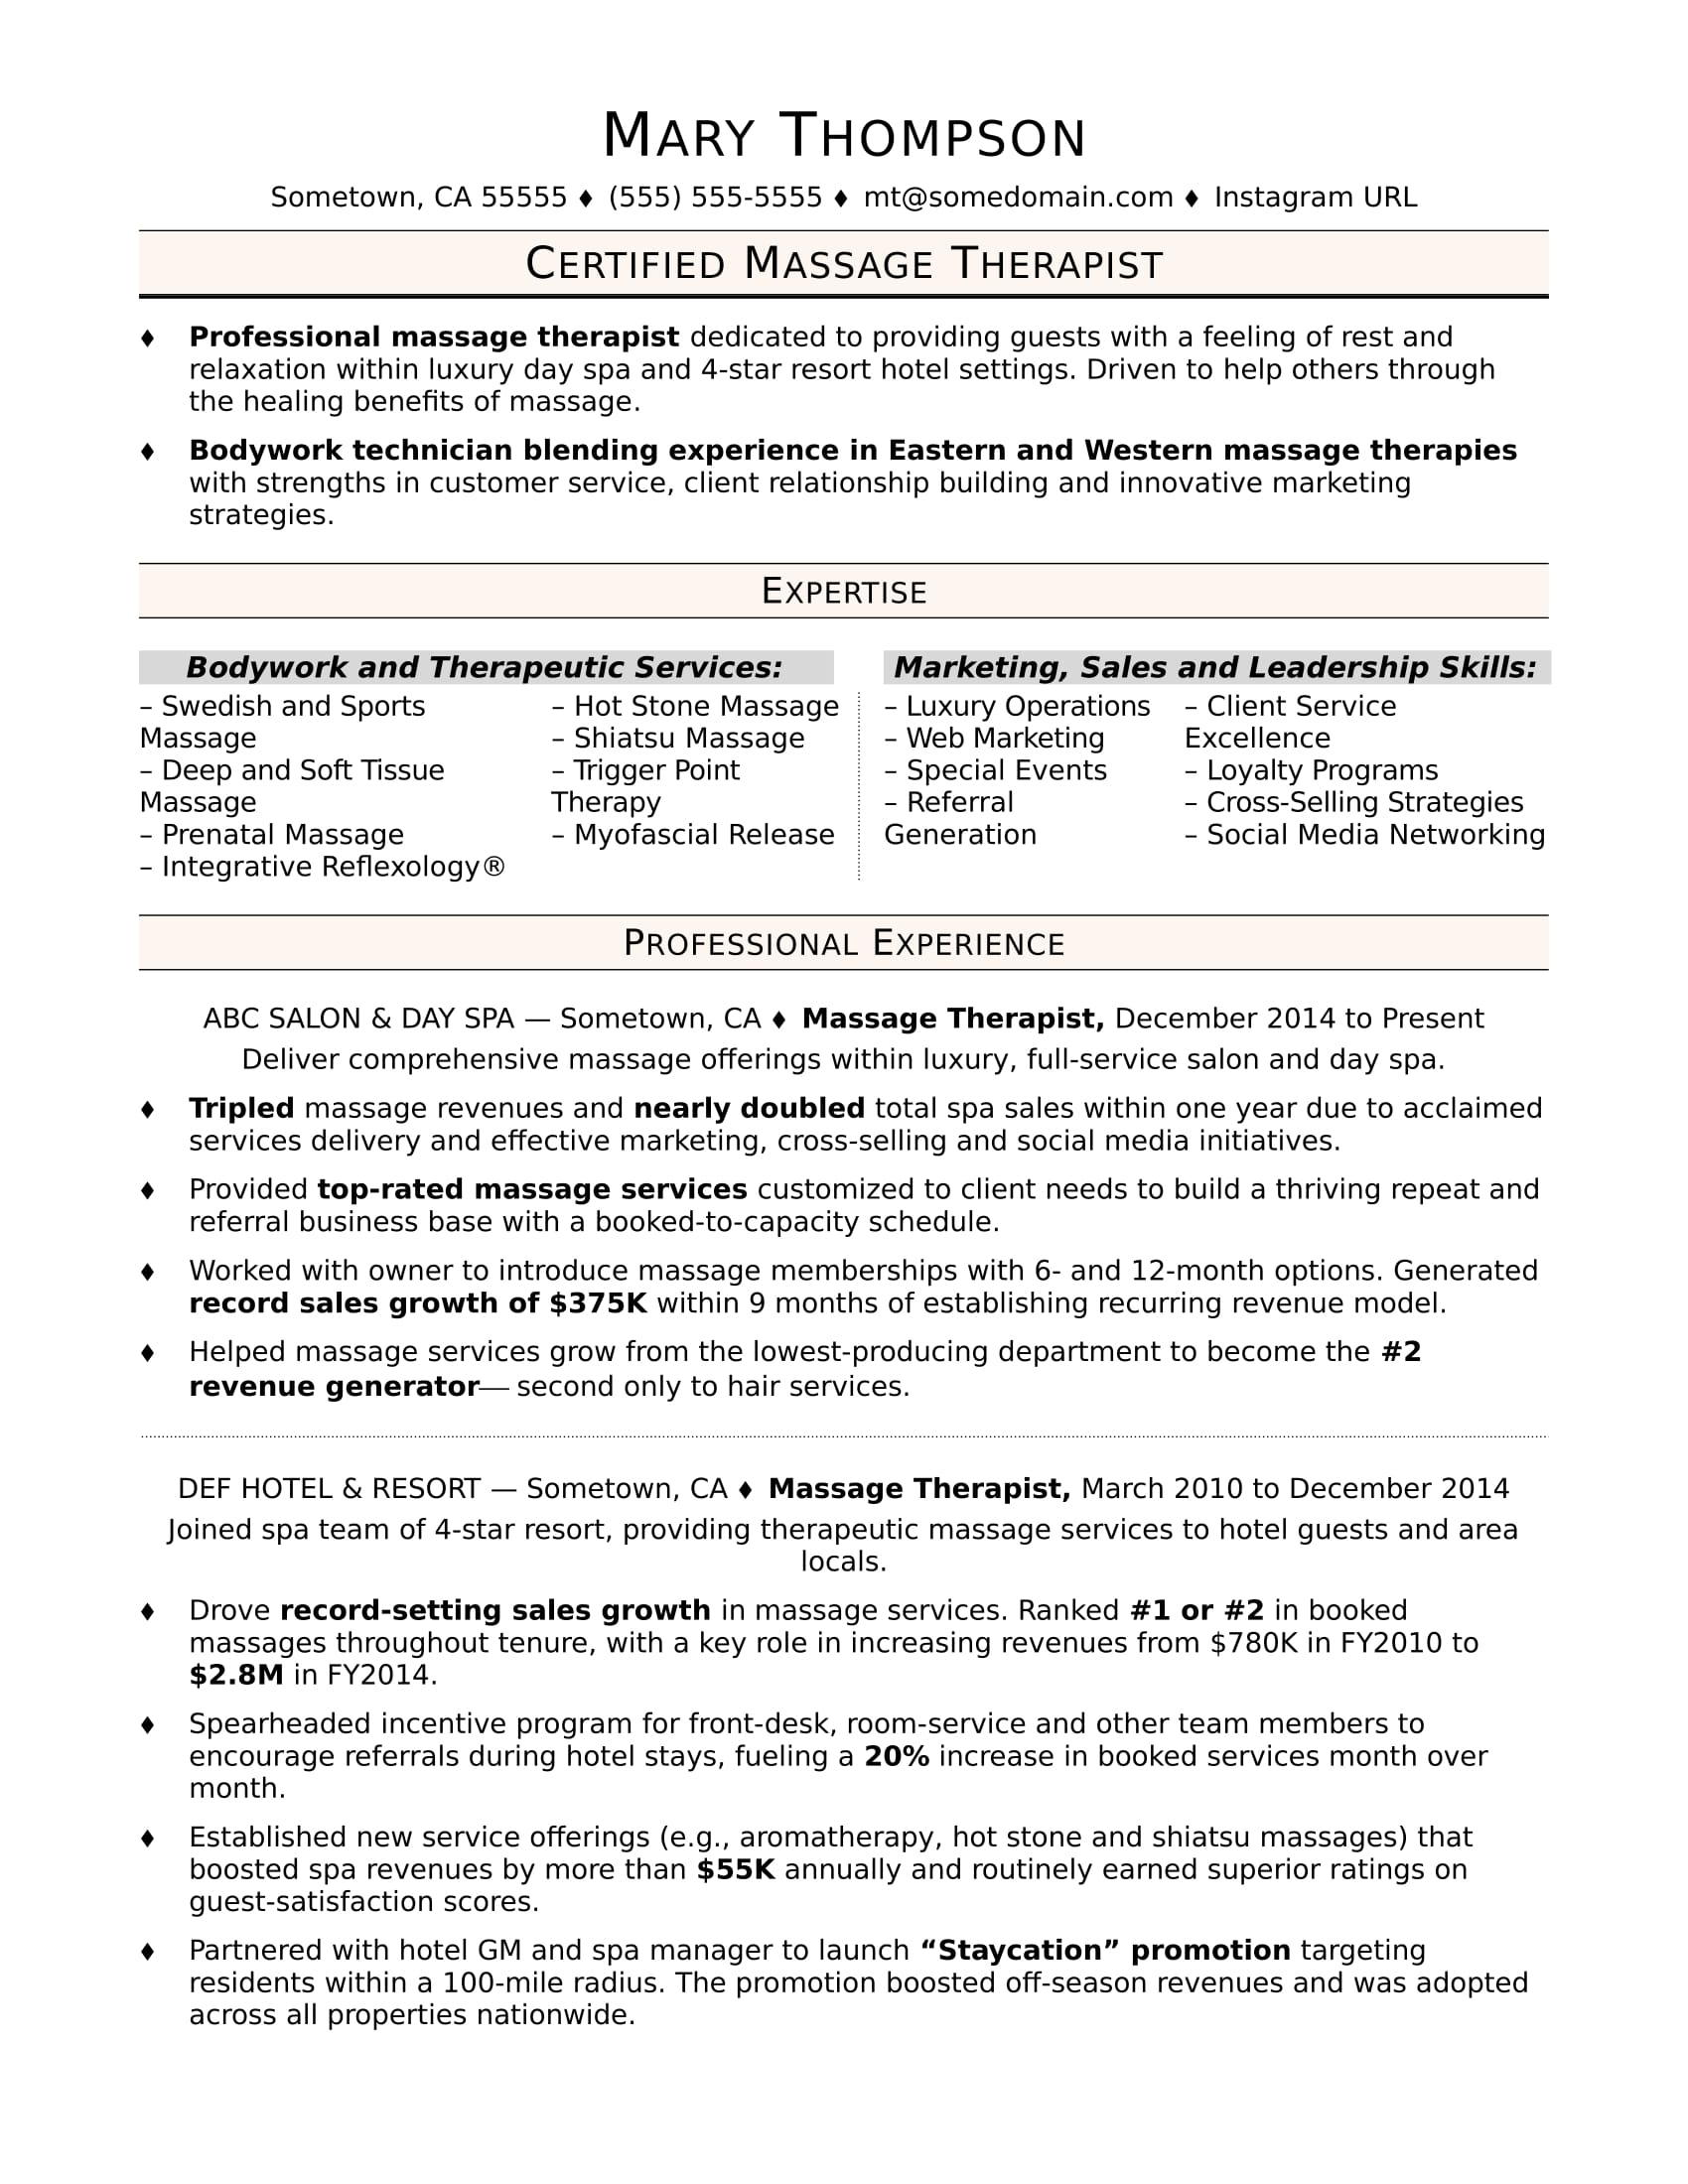 Massage Therapist Resume Sample  Resume Hot Words